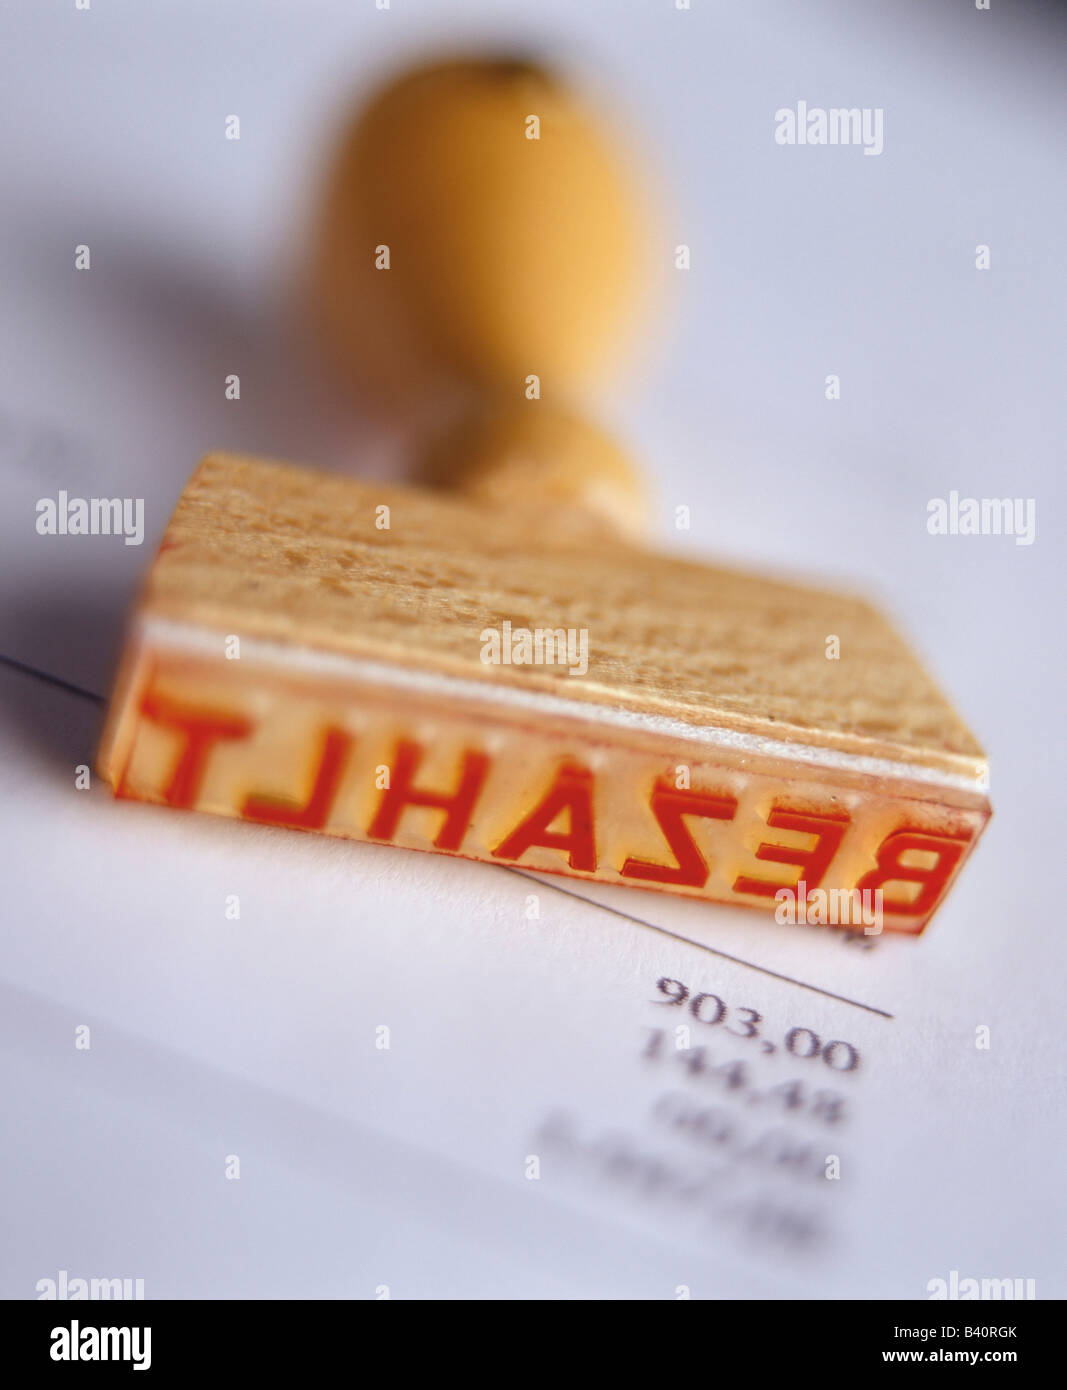 Paid stamp on an invoice - Stock Image